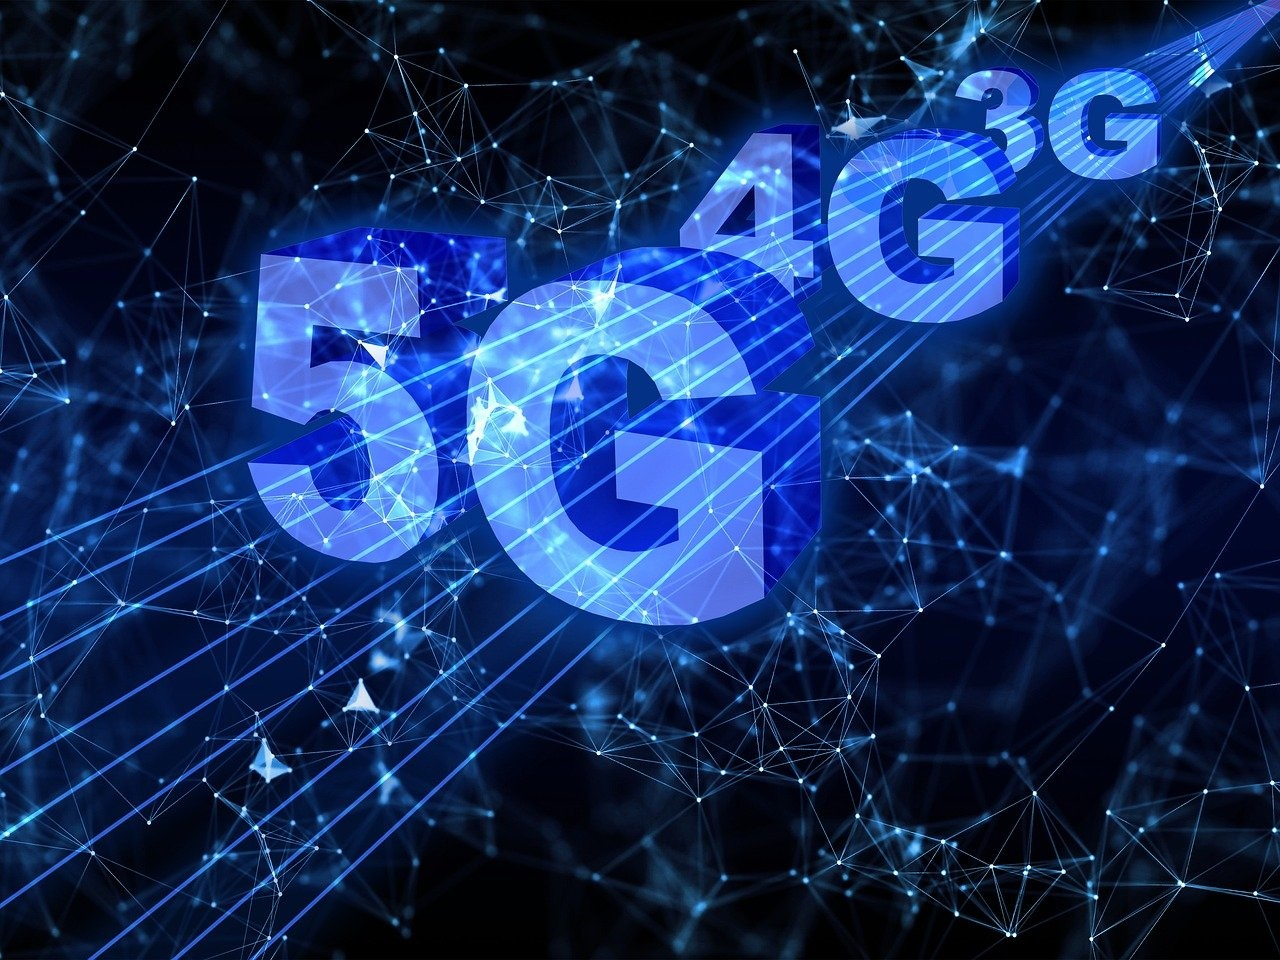 5G Network in China: Development, Opportunities and Threats